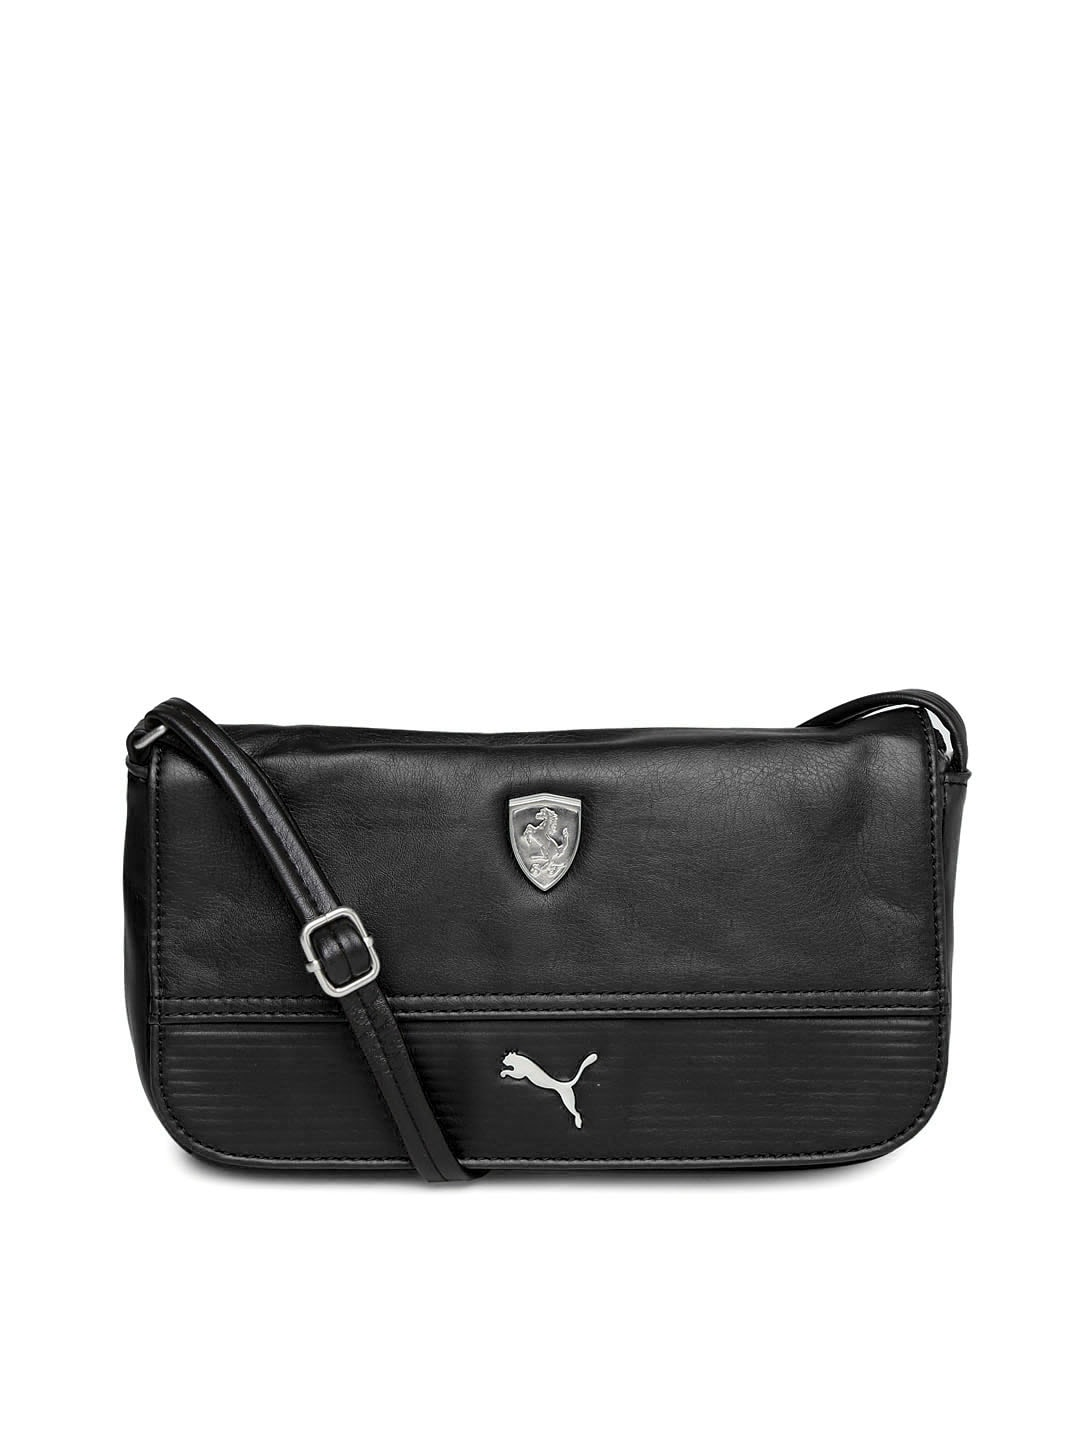 Puma 7349801 Black Ferrari Sling Bag - Best Price in India  d3fcbd290b407